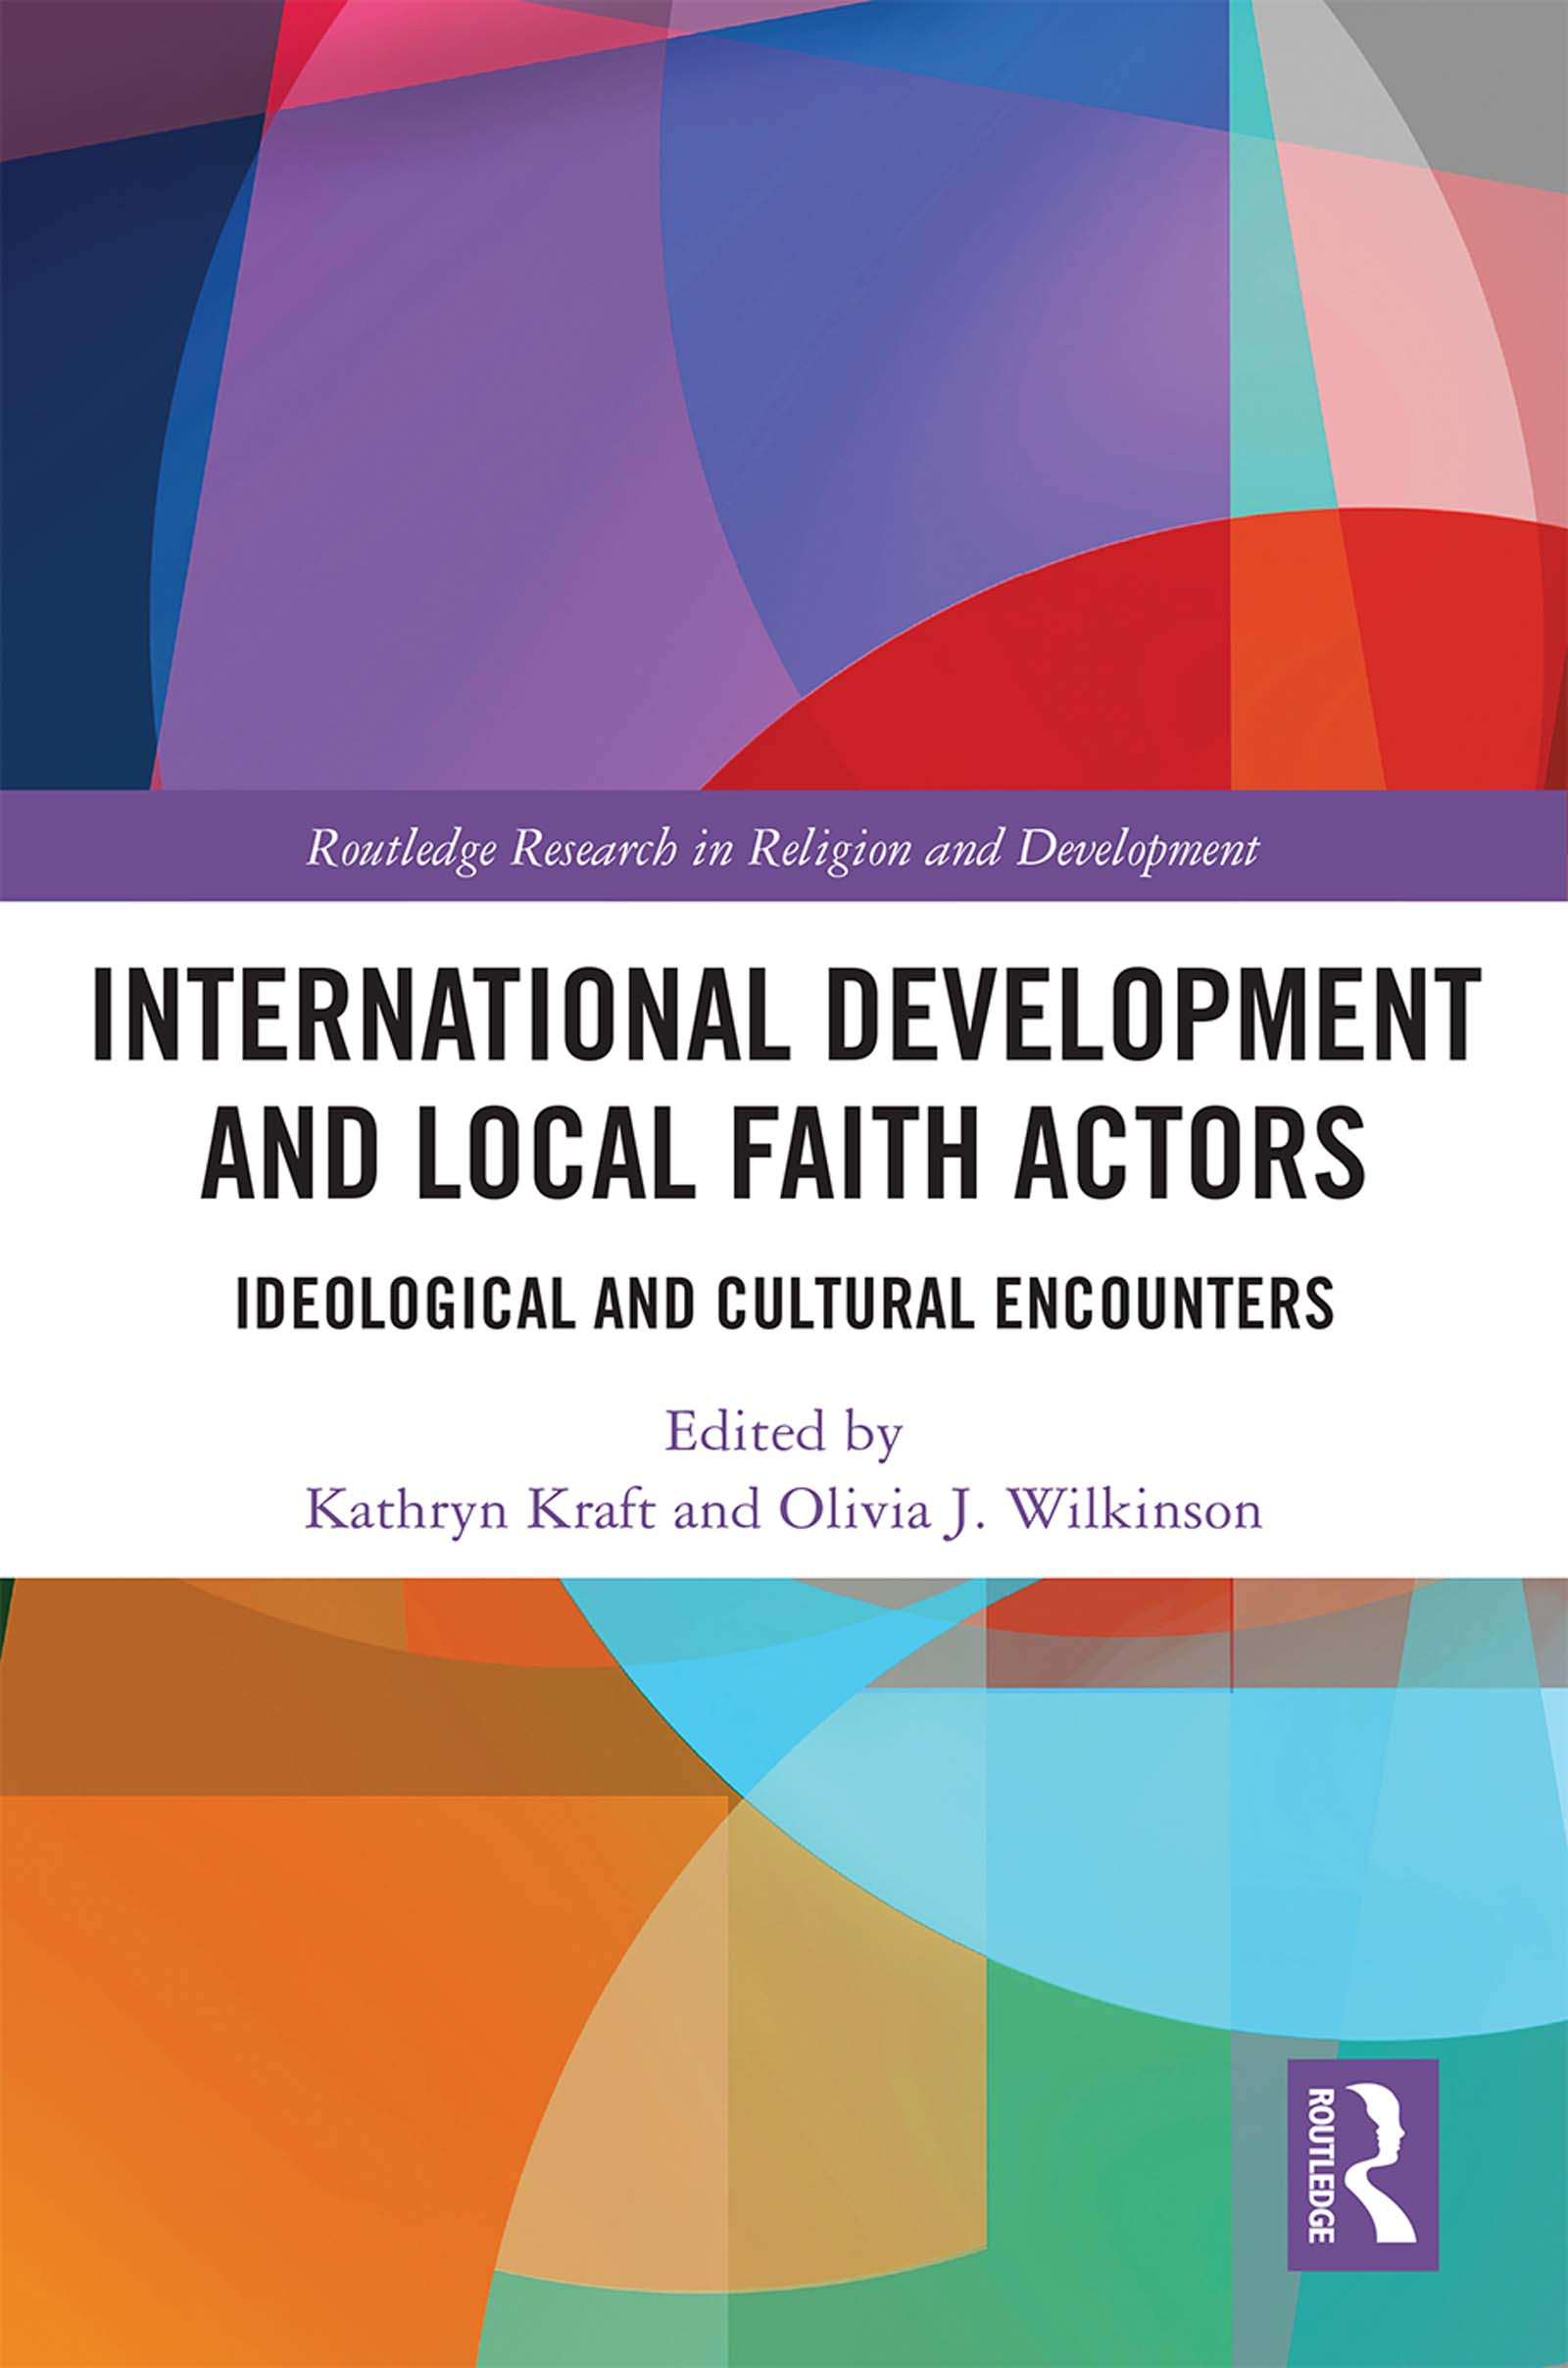 International Development and Local Faith Actors: Ideological and Cultural Encounters book cover